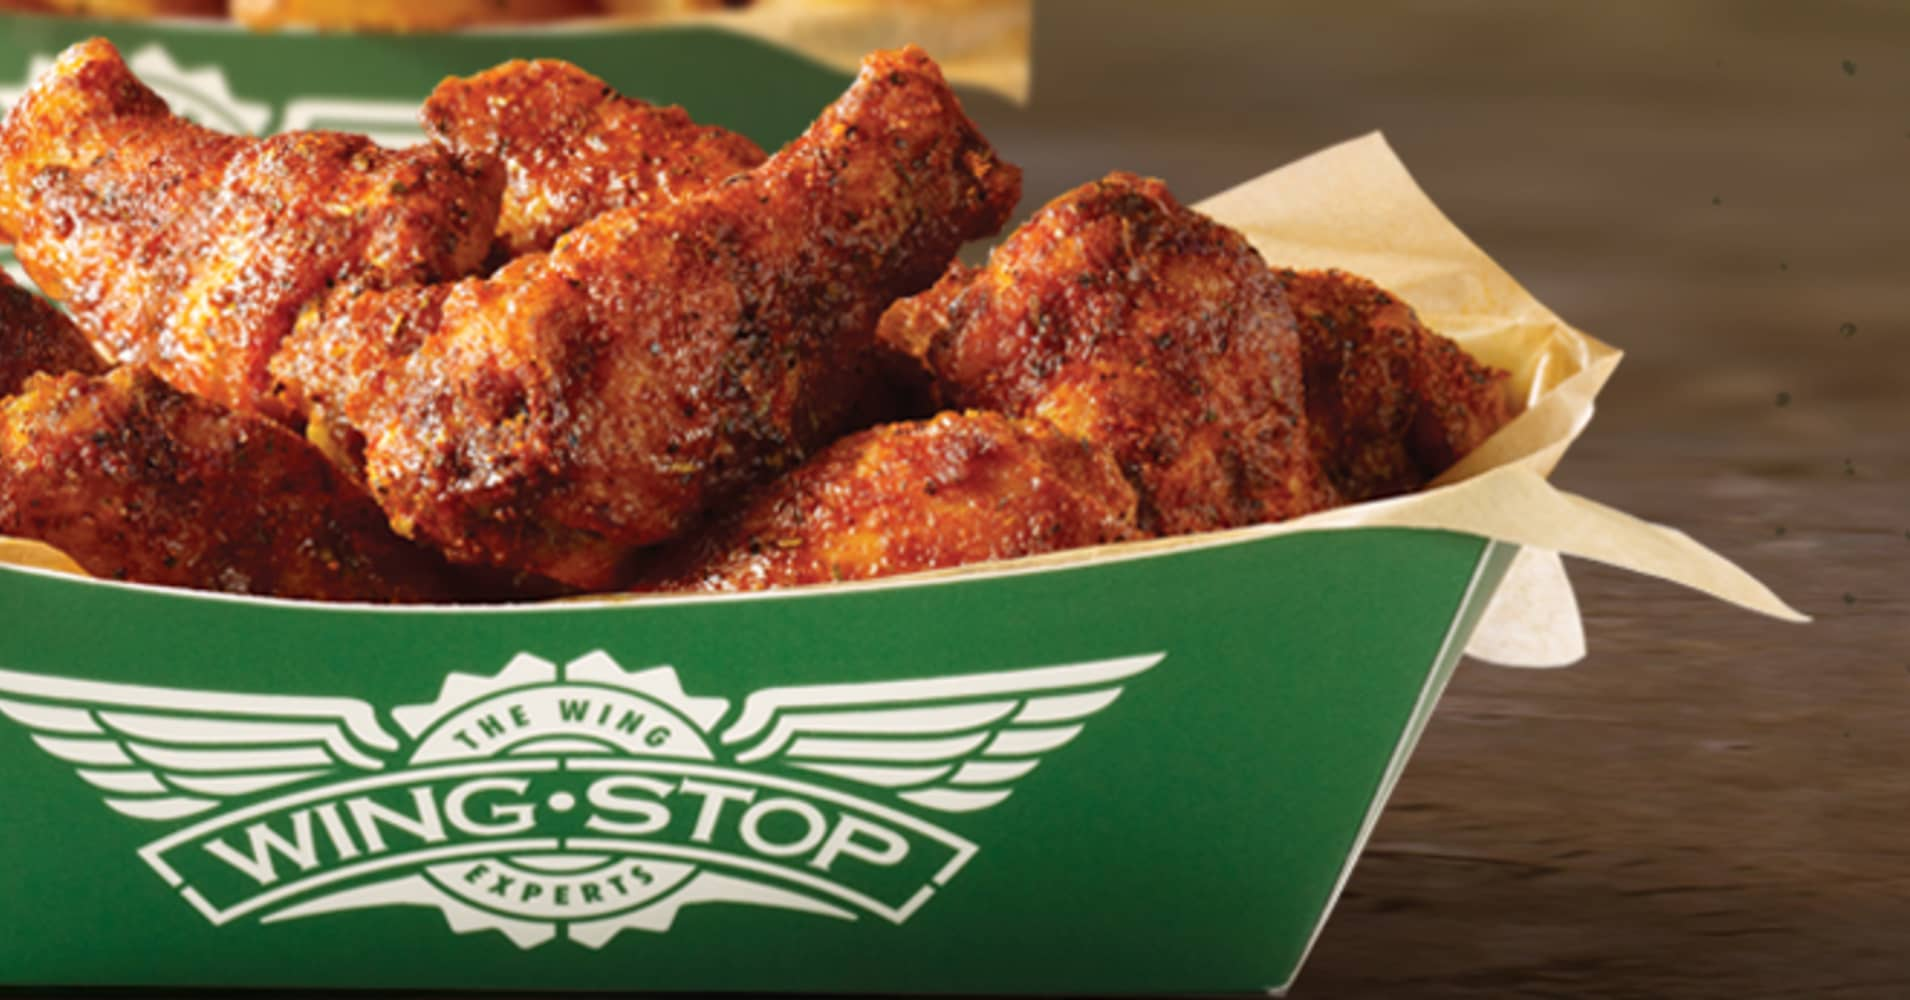 business plan for wingstop franchise